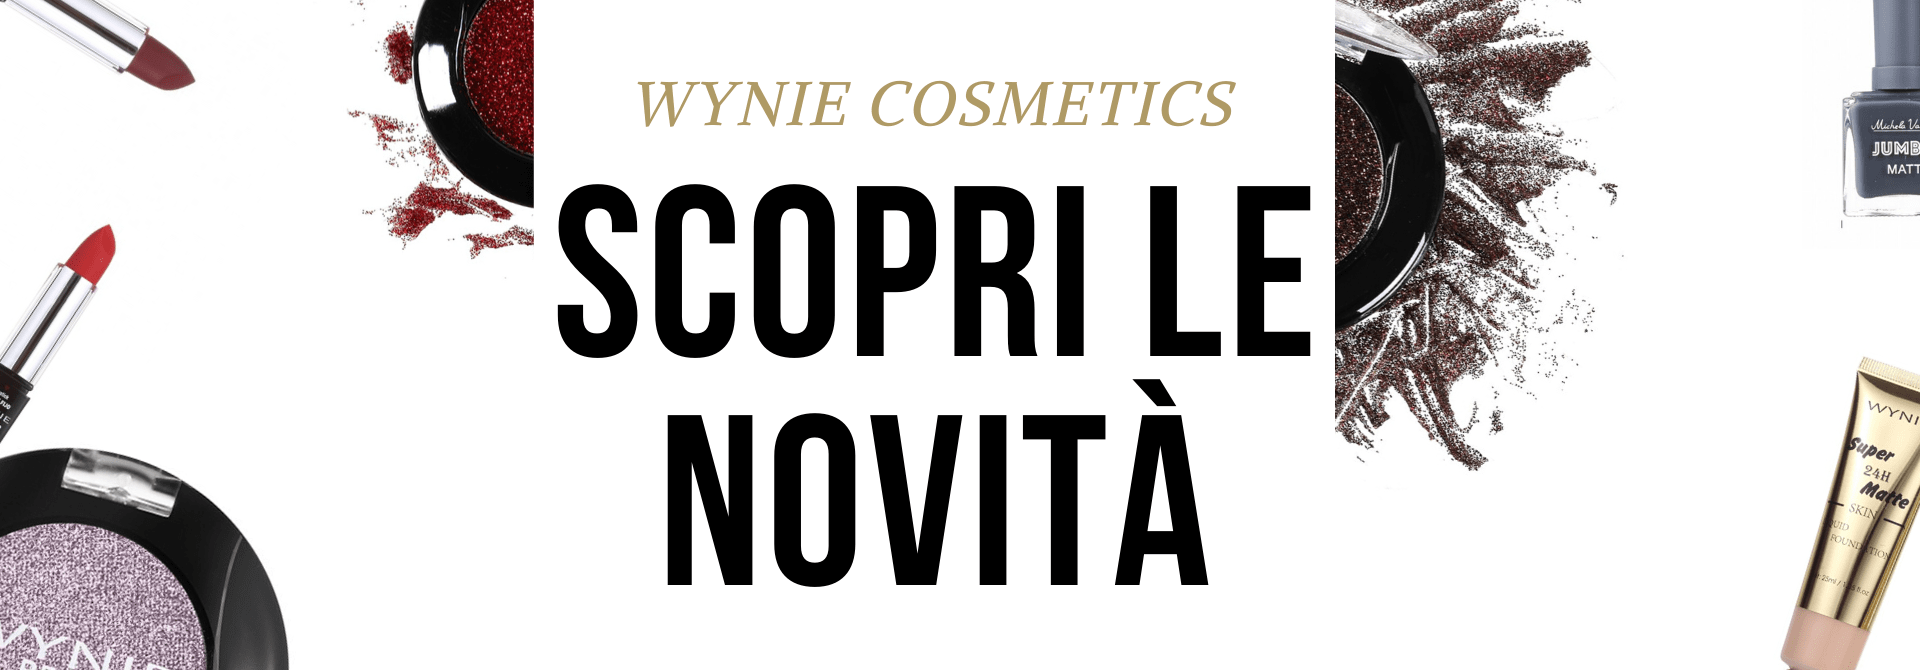 Scopri le novità make-up e accessori Wynie Cosmetics